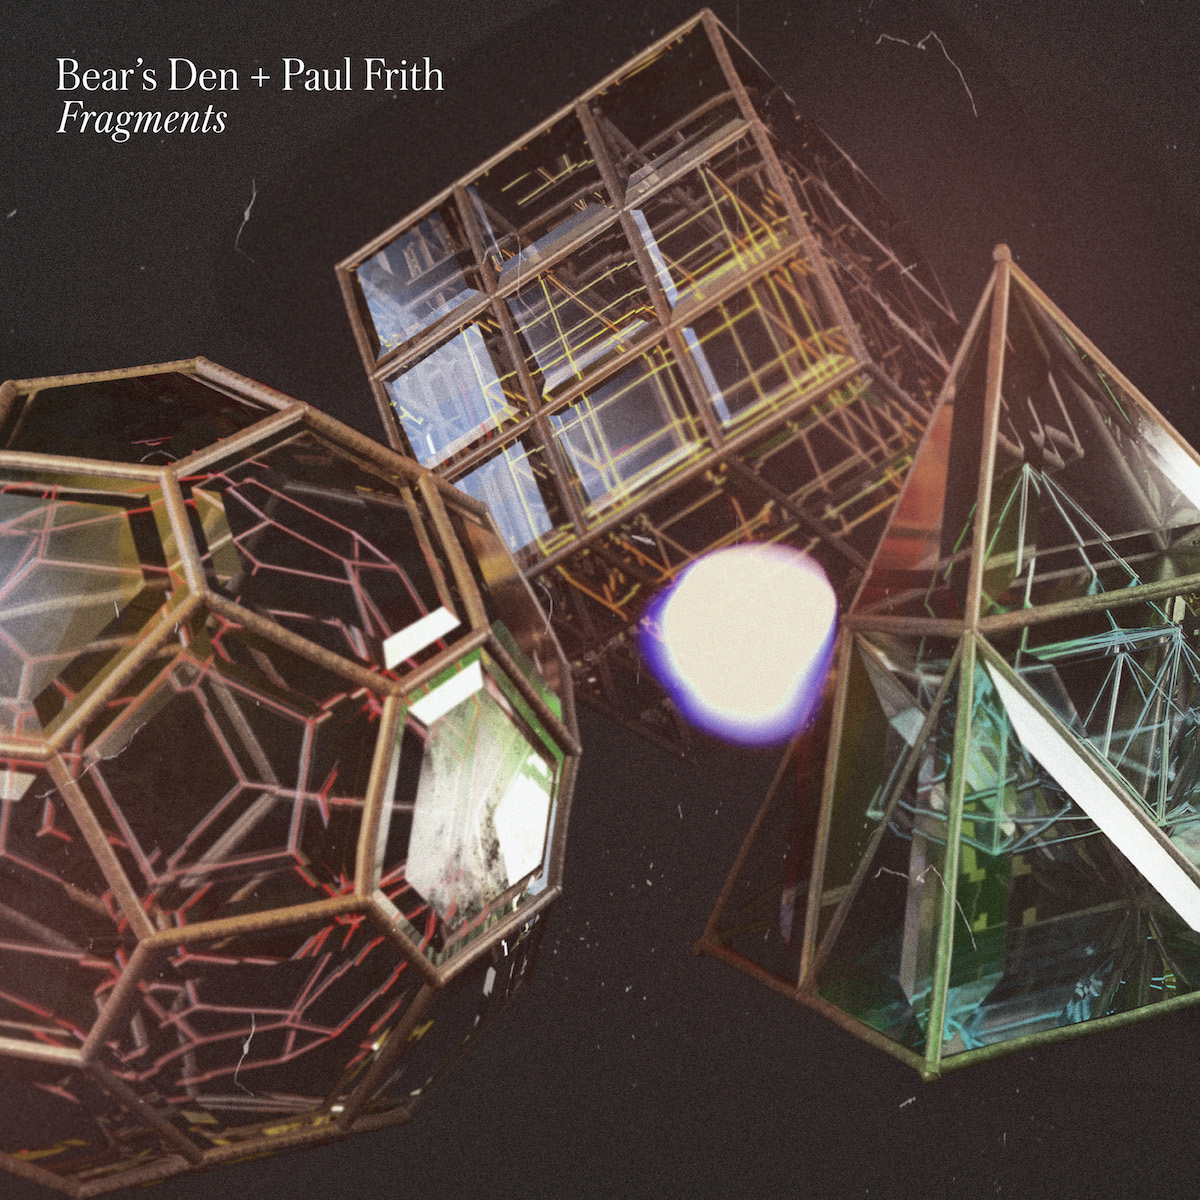 Fragments - Bear's Den, Paul Frith